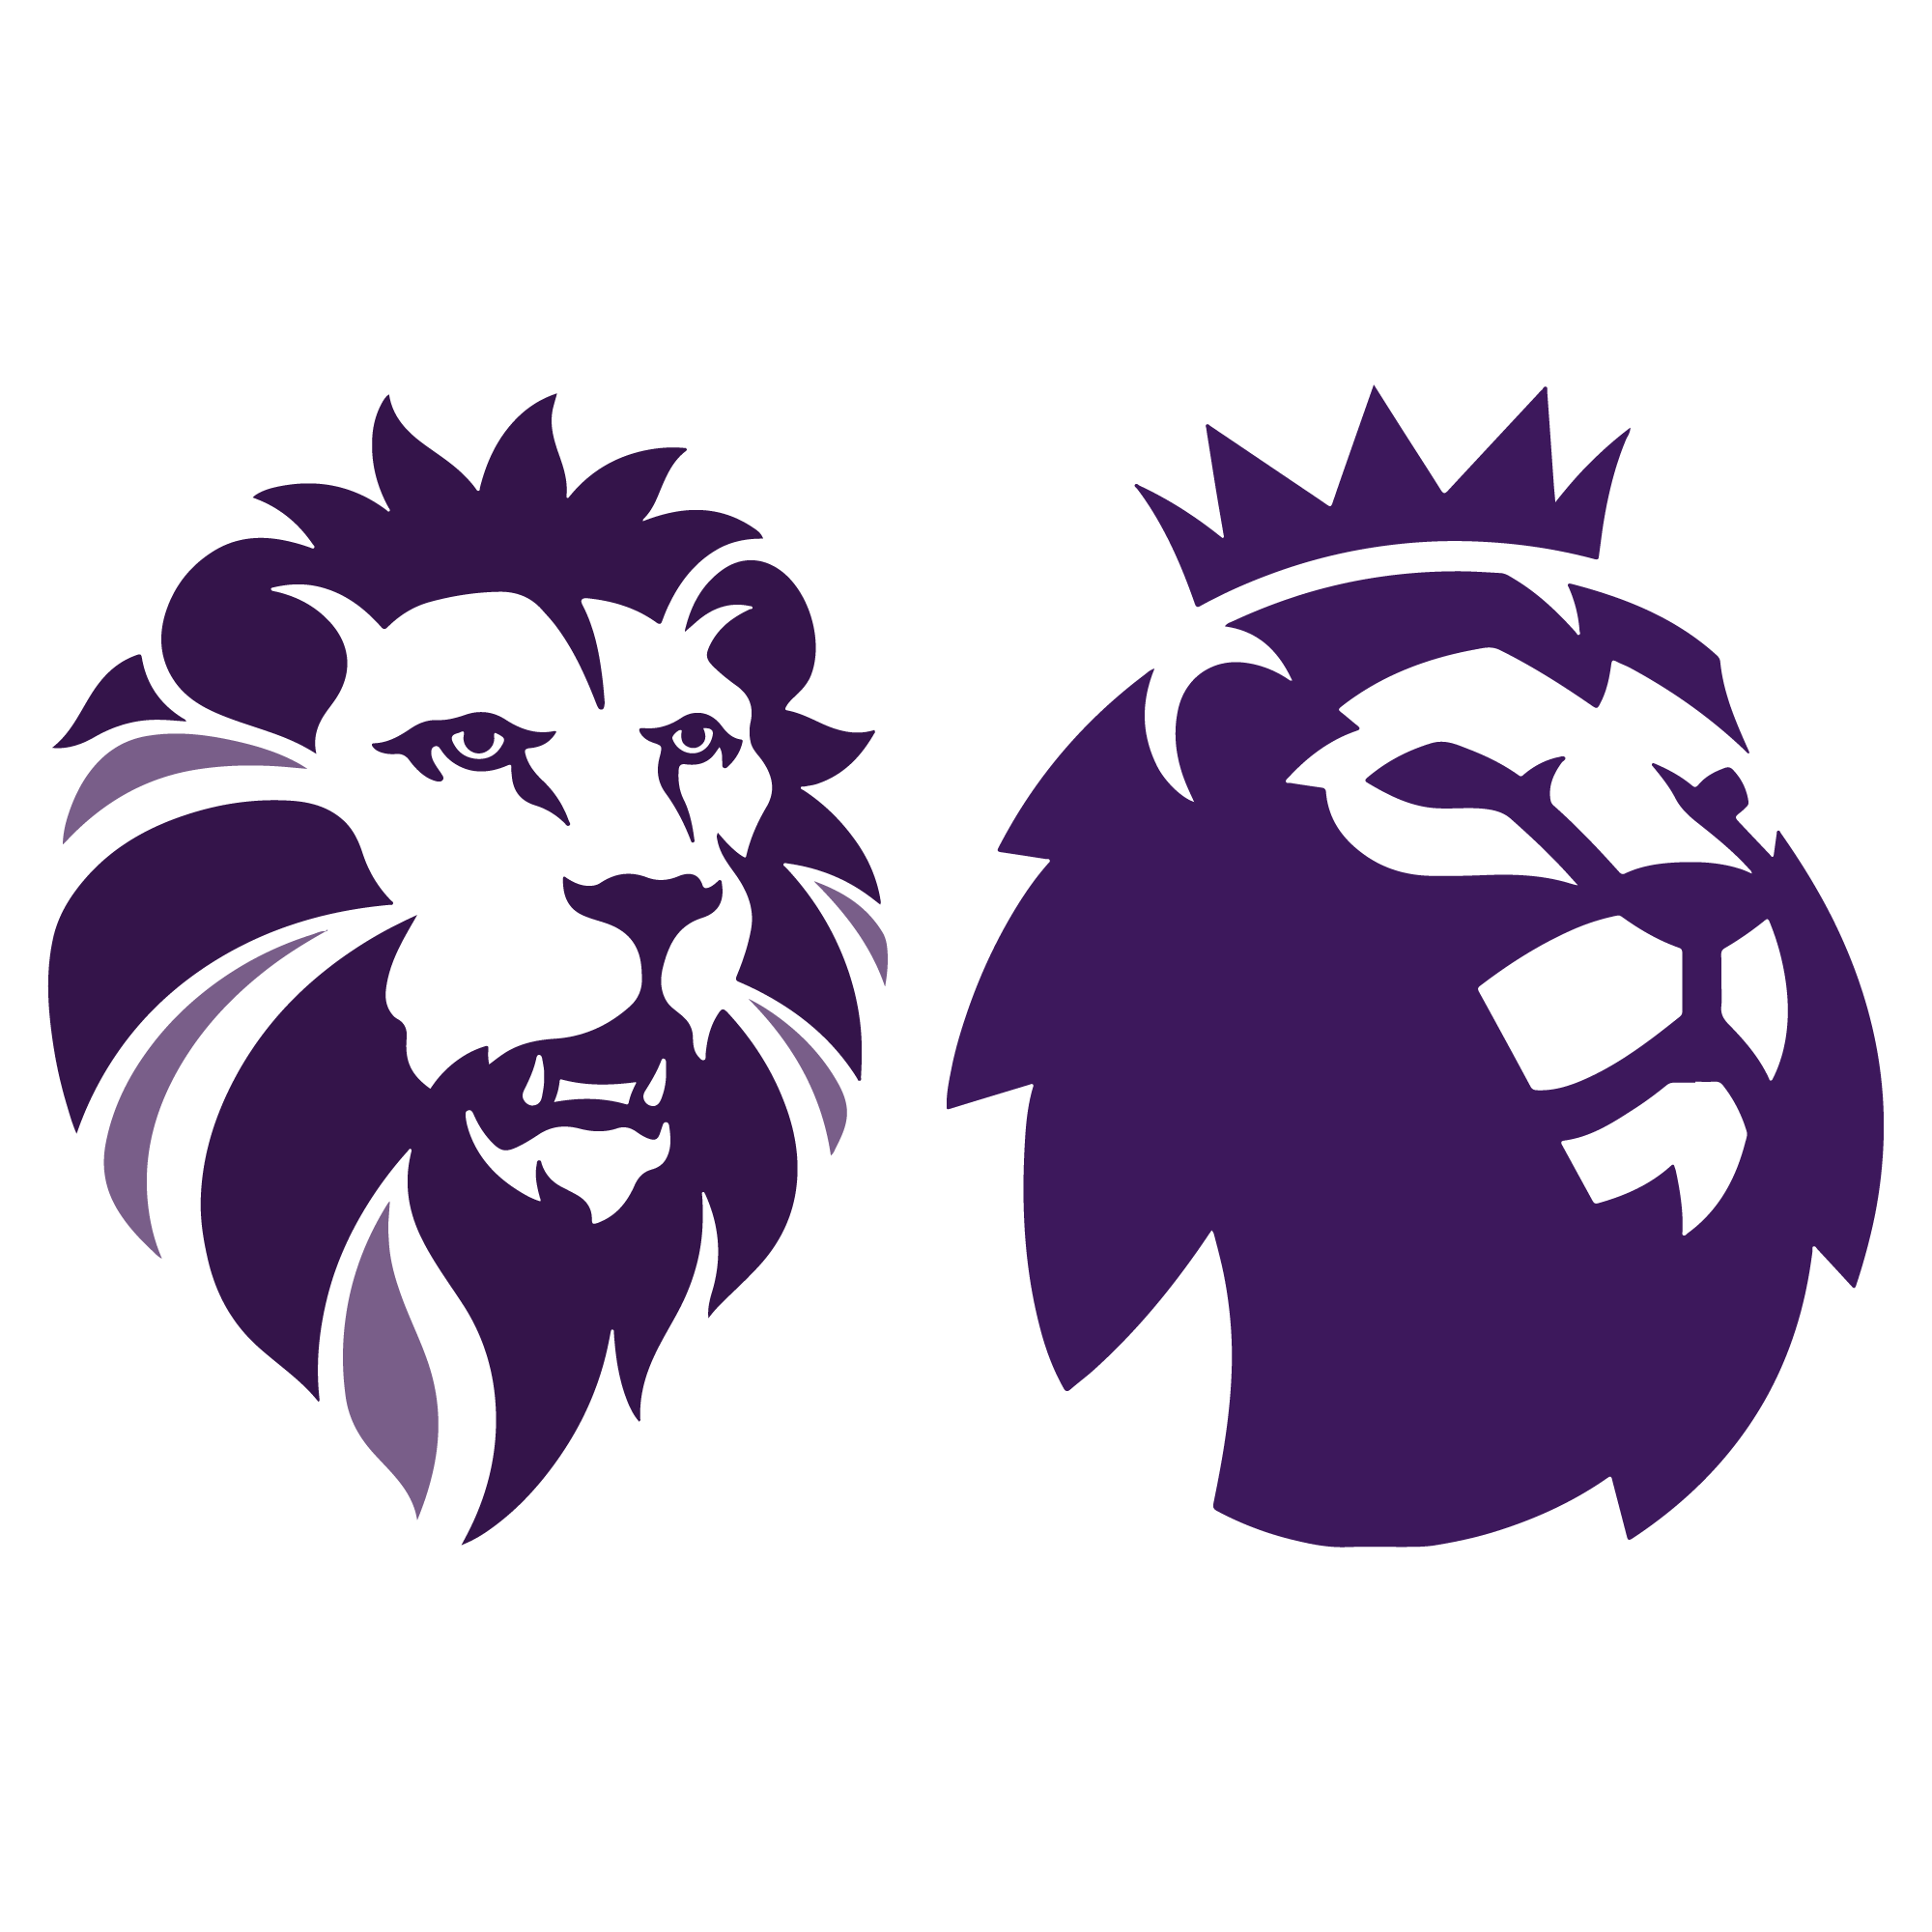 Clipart rabbit lion. Head silhouette at getdrawings